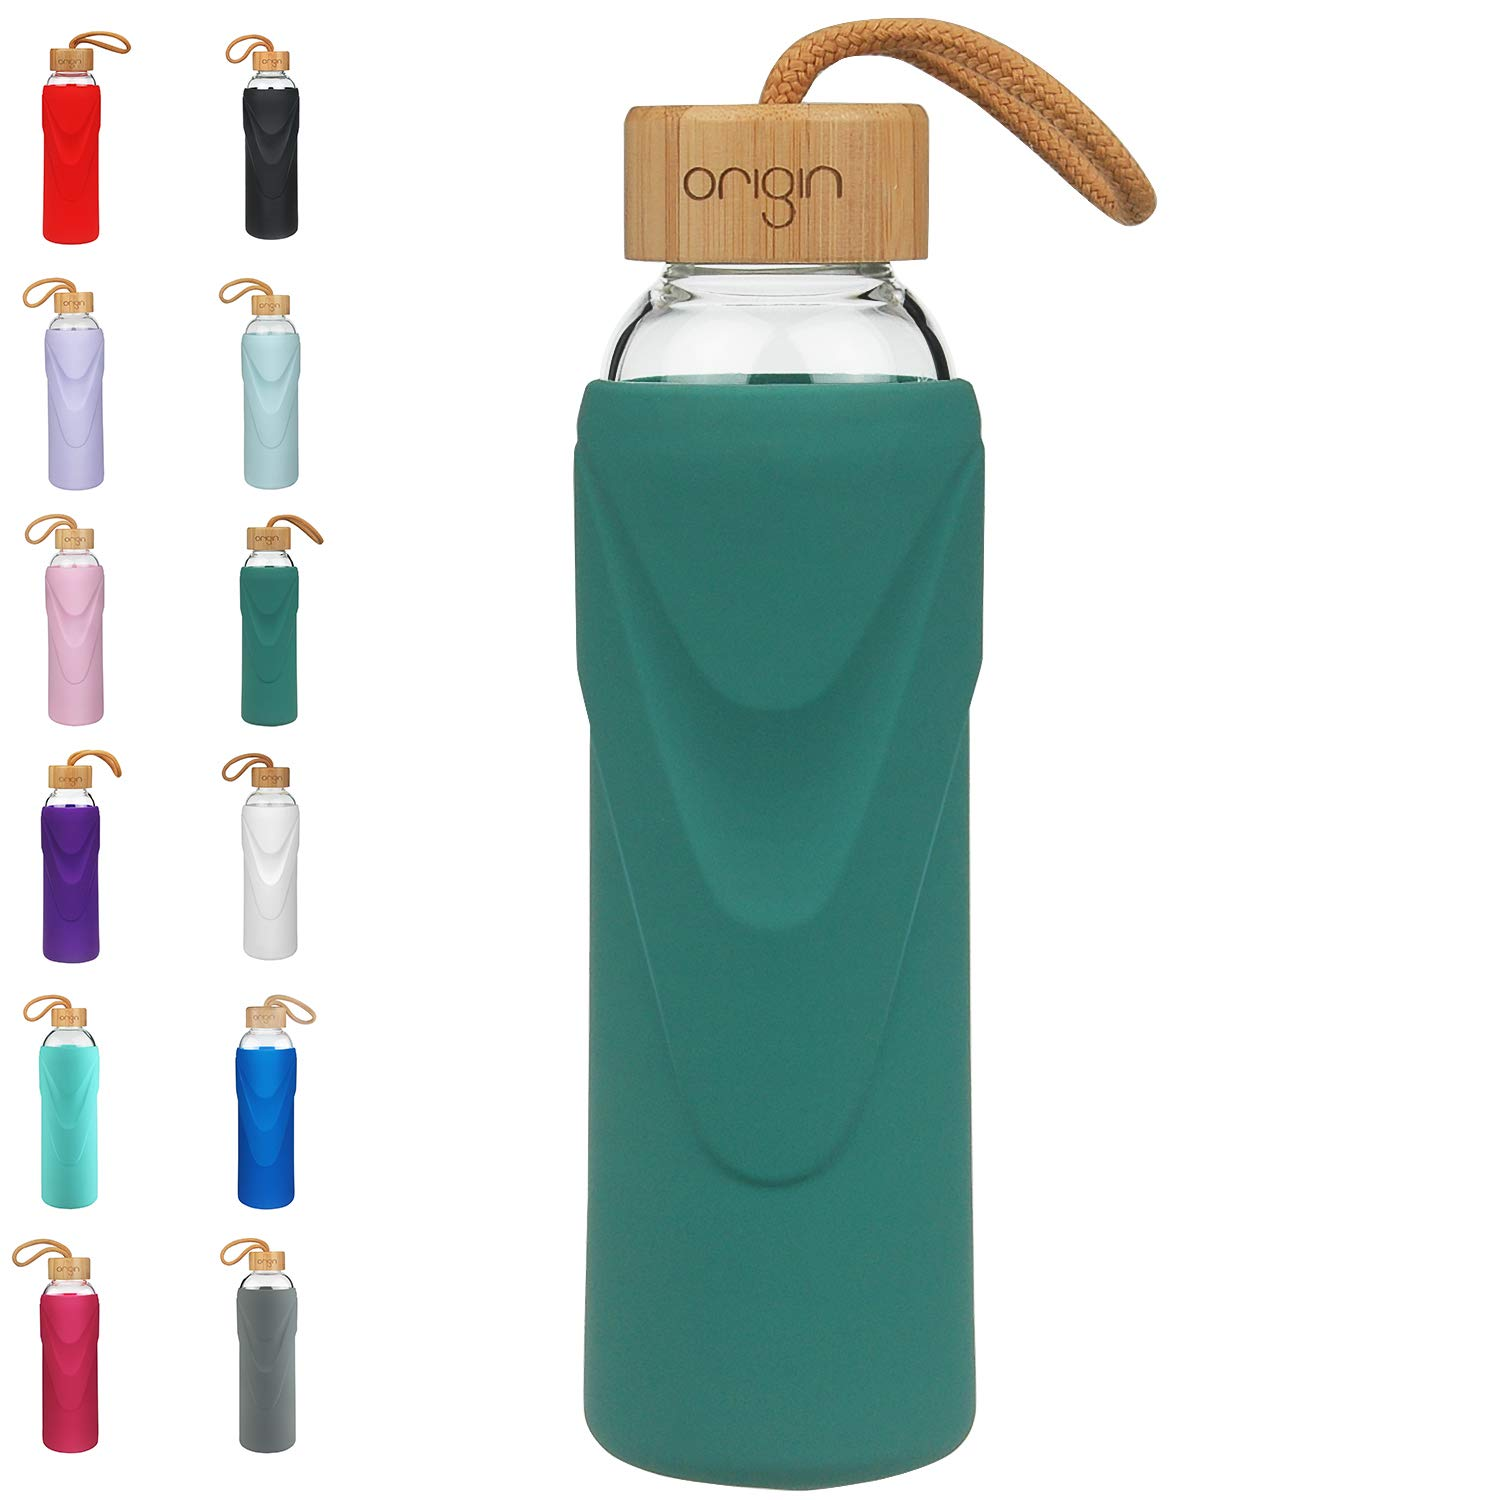 Origin - Best BPA-Free Glass Water Bottle with Protective Silicone Sleeve and Bamboo Lid - Dishwasher Safe - 32 Ounce (Seaside Green)